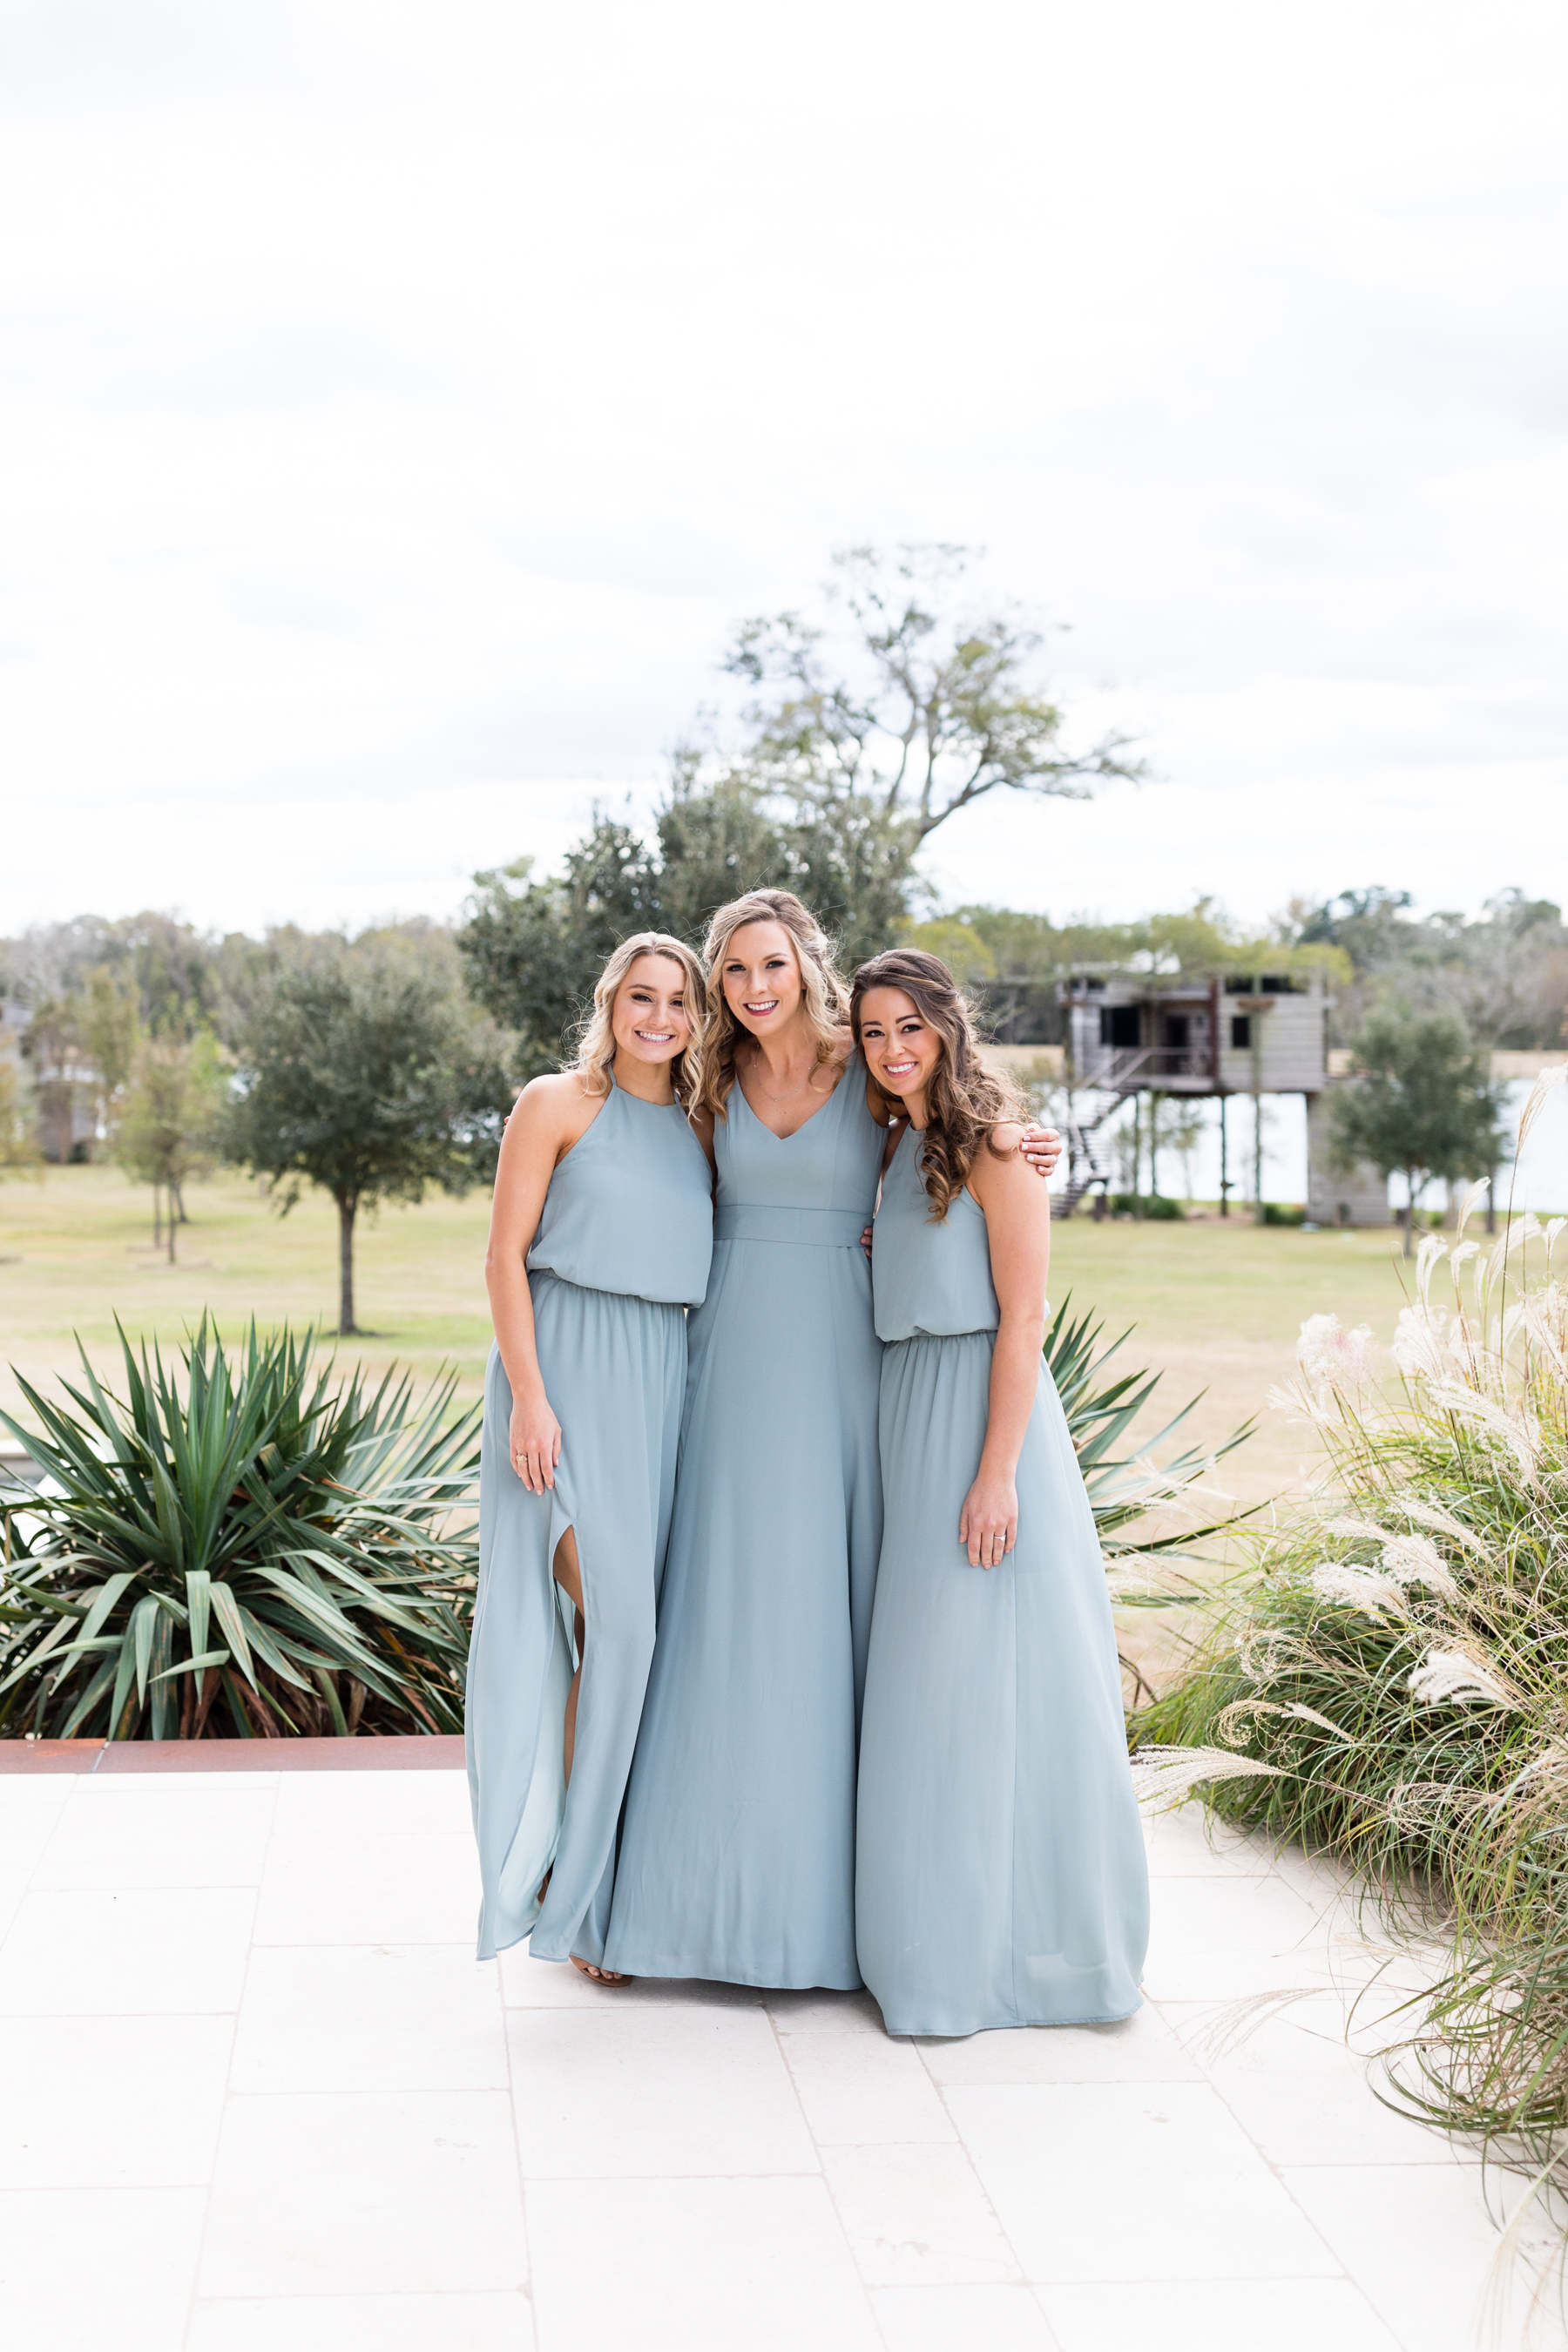 bridesmaids enjoying the outdoor space at a Texas ranch wedding